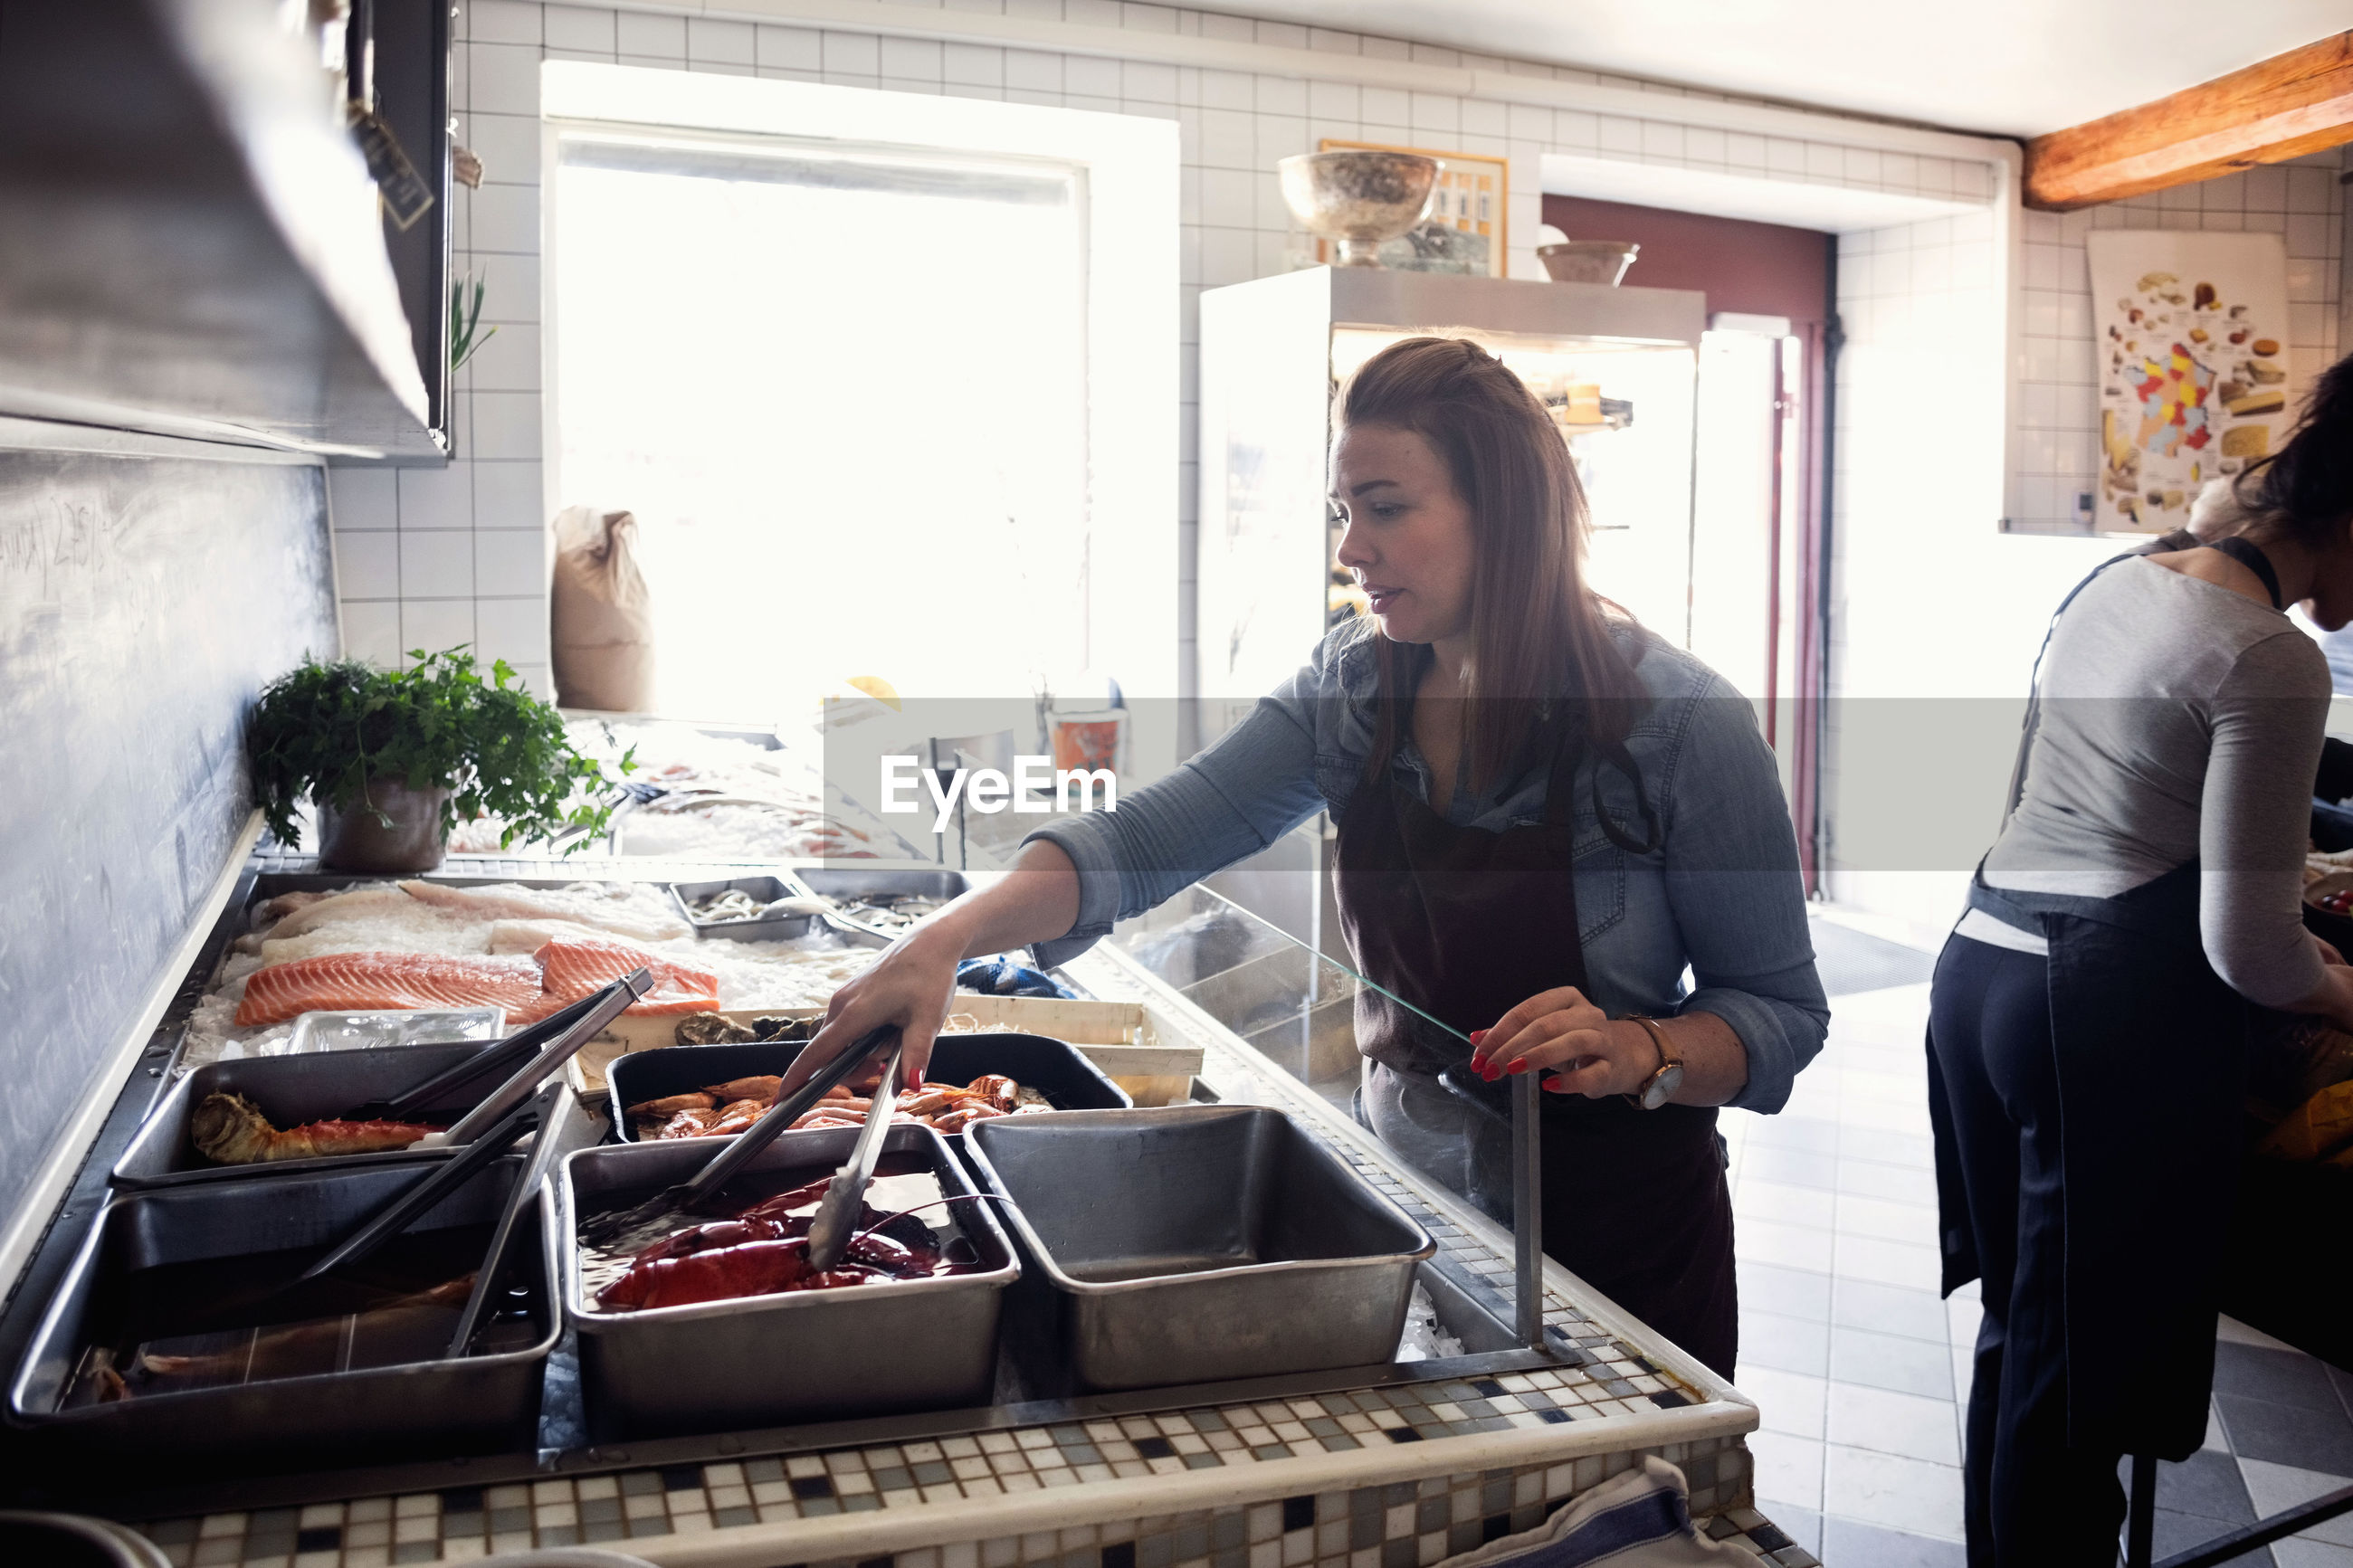 WOMAN STANDING BY FOOD IN A KITCHEN